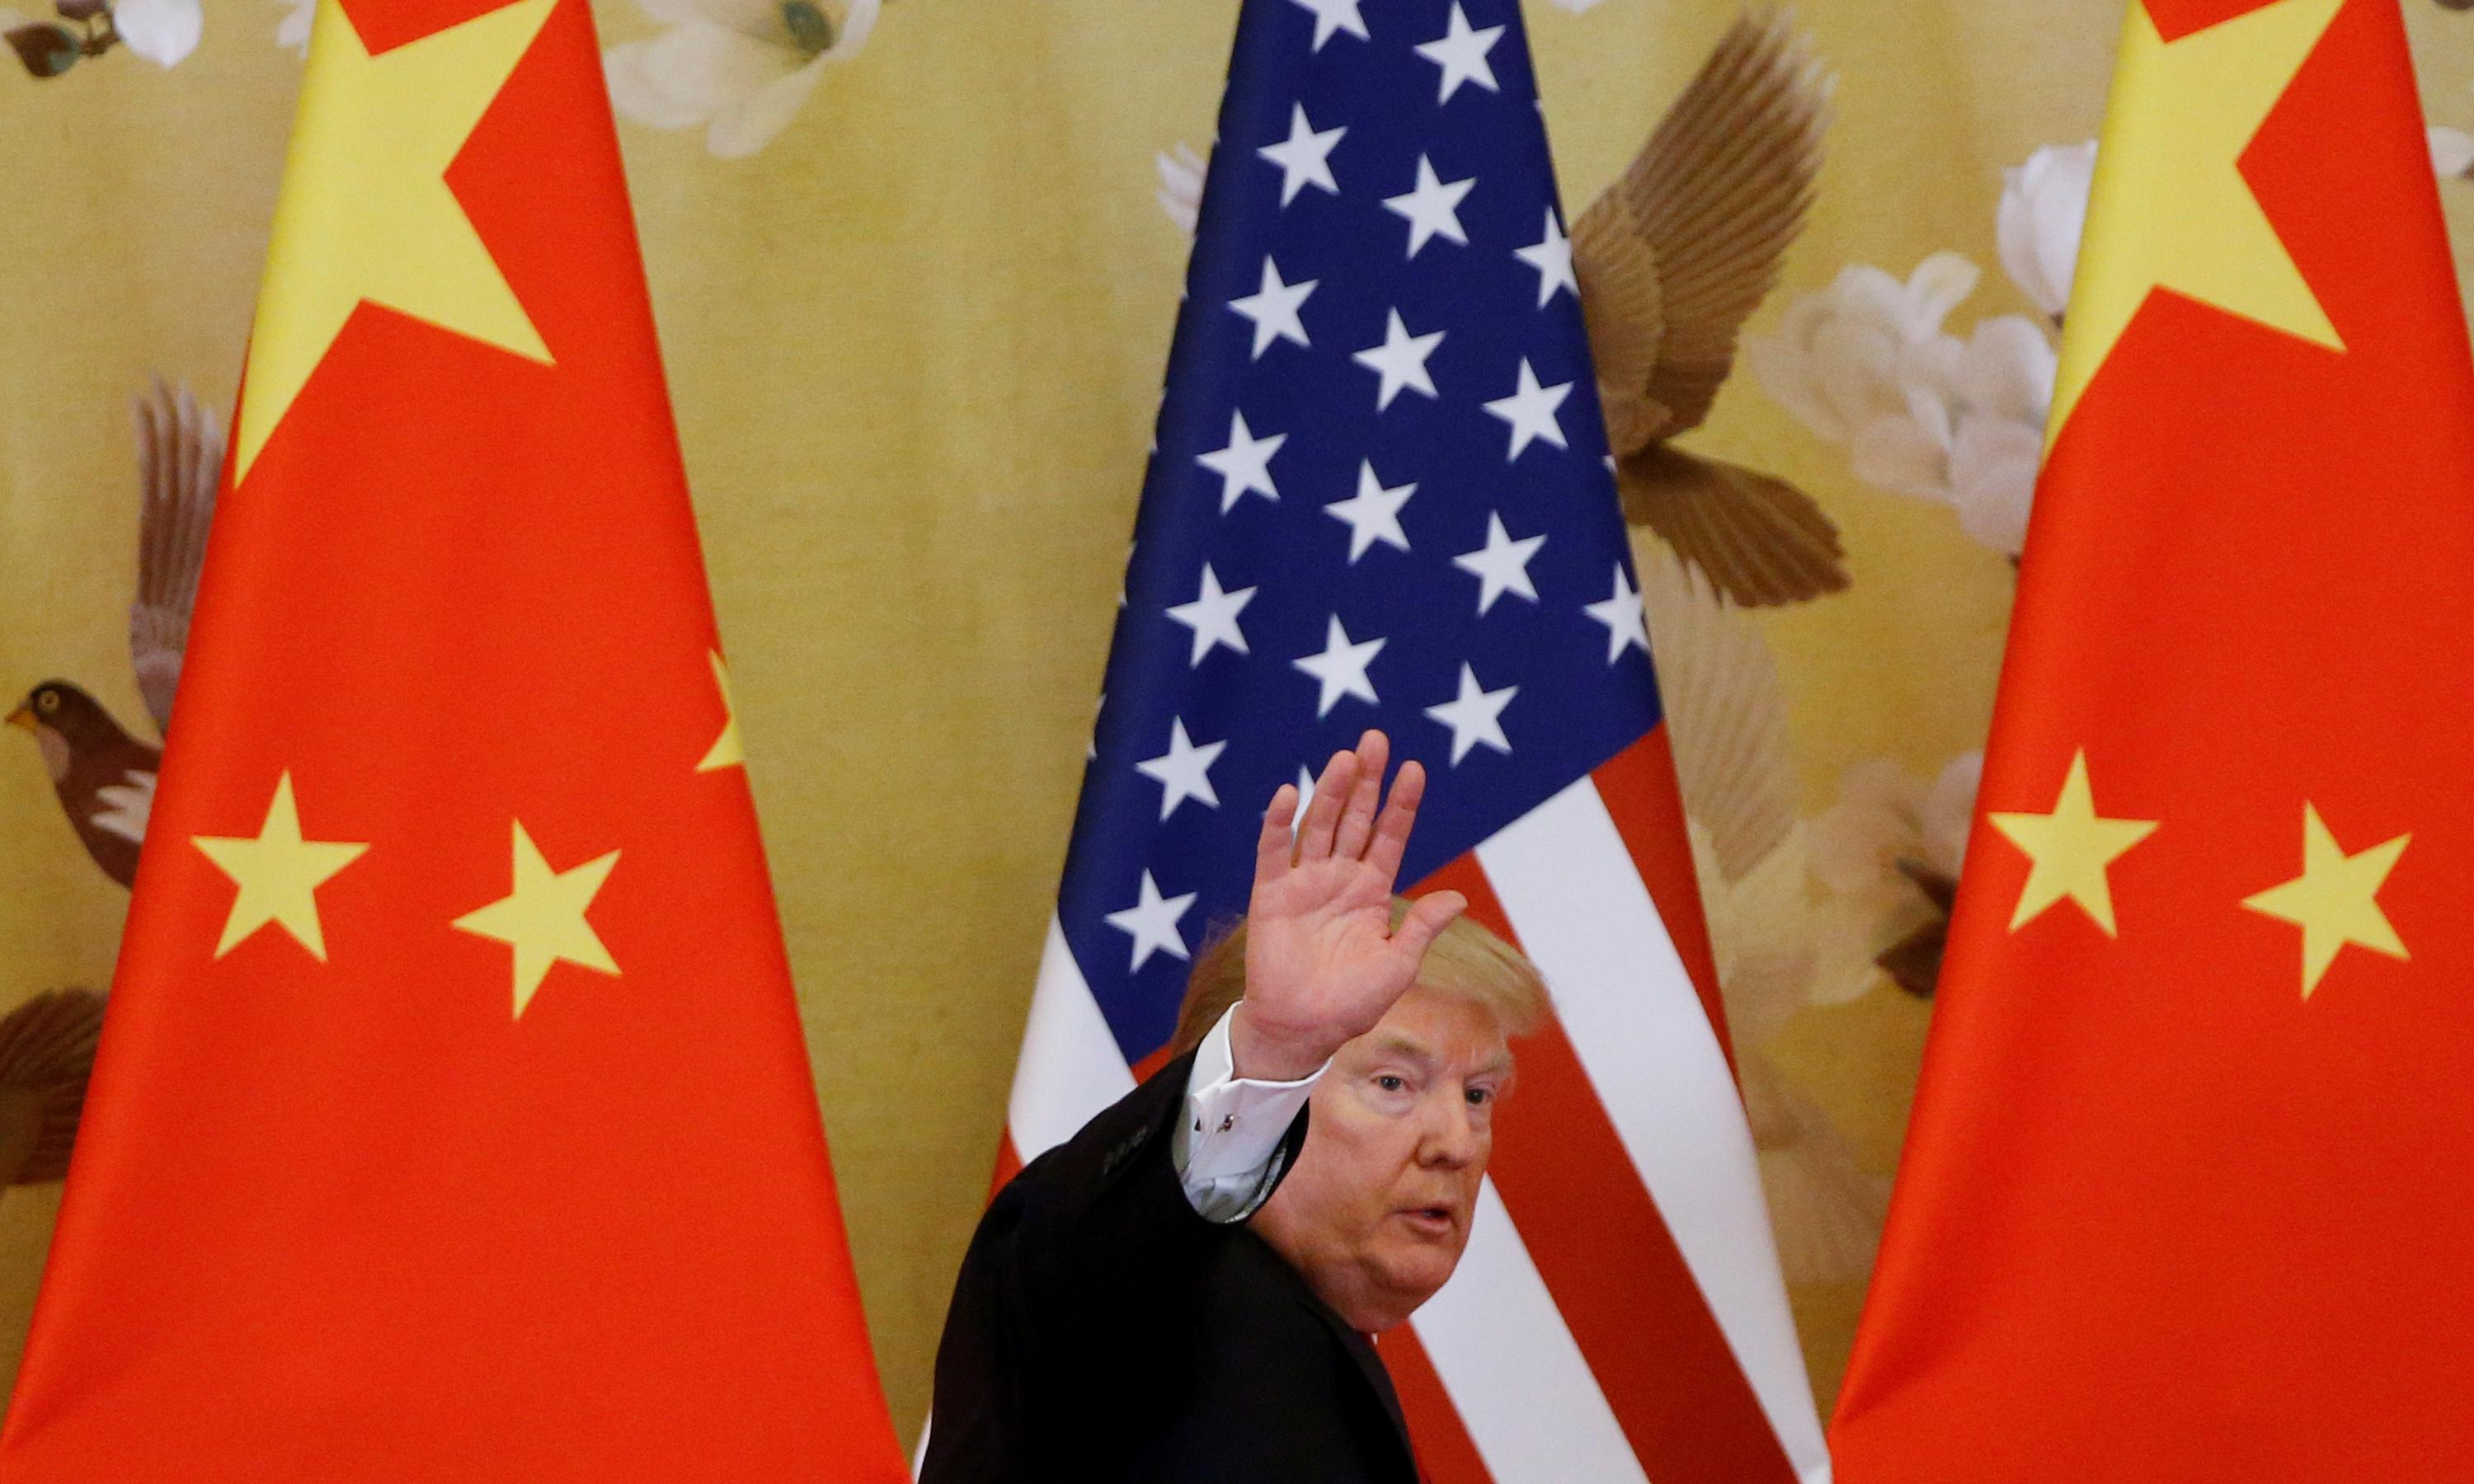 US briefing: China tariffs, Barr in contempt and Brazil's environment